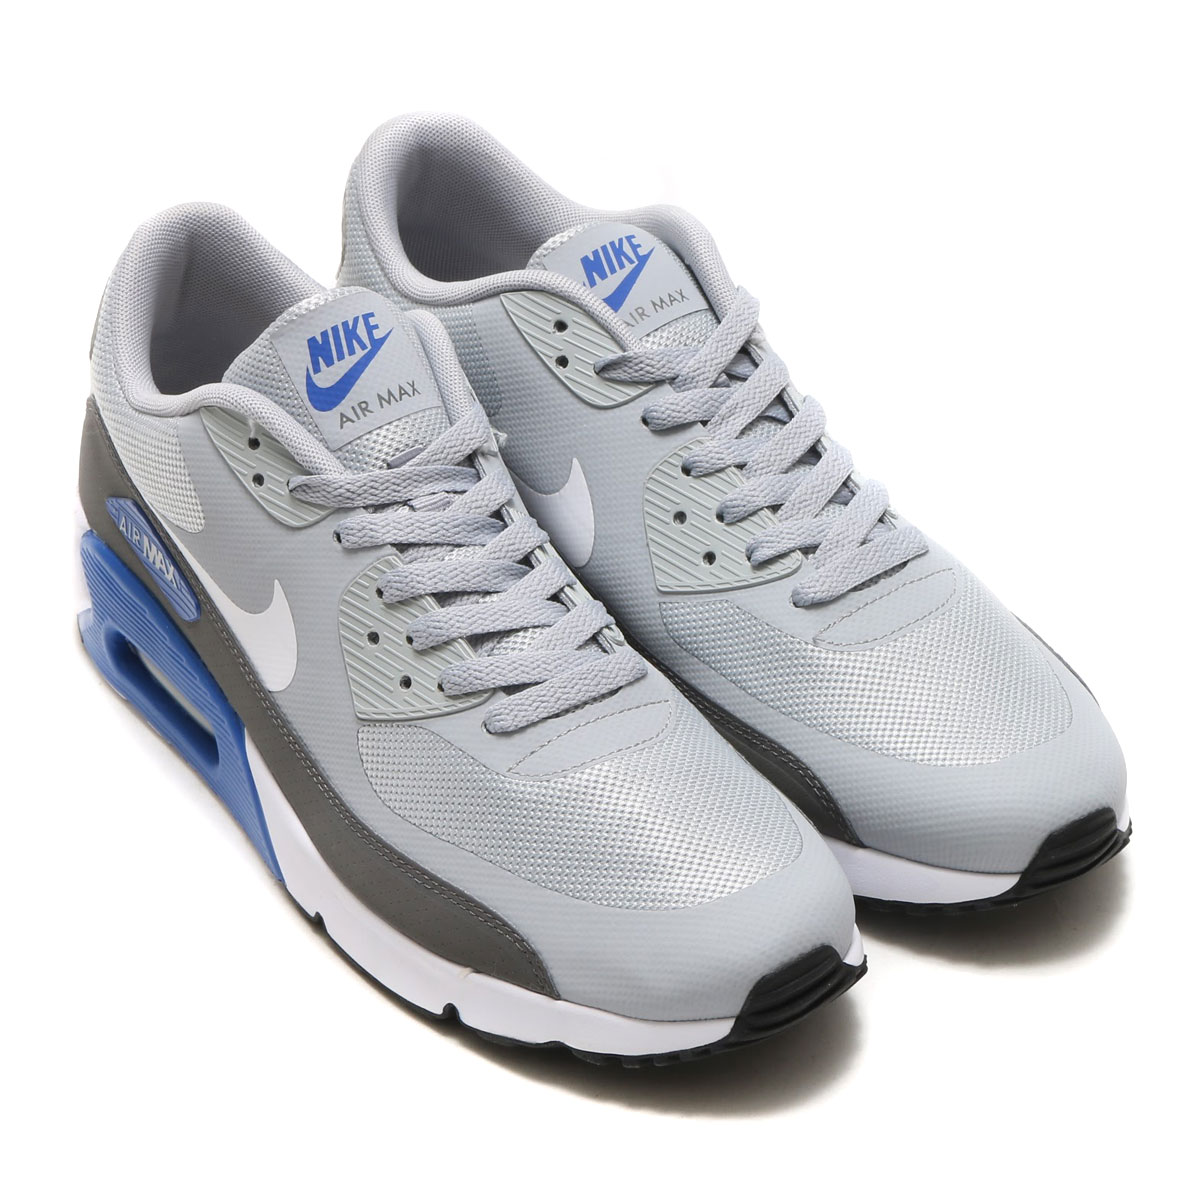 more photos 59397 7126d NIKE AIR MAX 90 ULTRA 2.0 ESSENTIAL (Kie Ney AMAX 90 ultra 2.0 essential)  ...